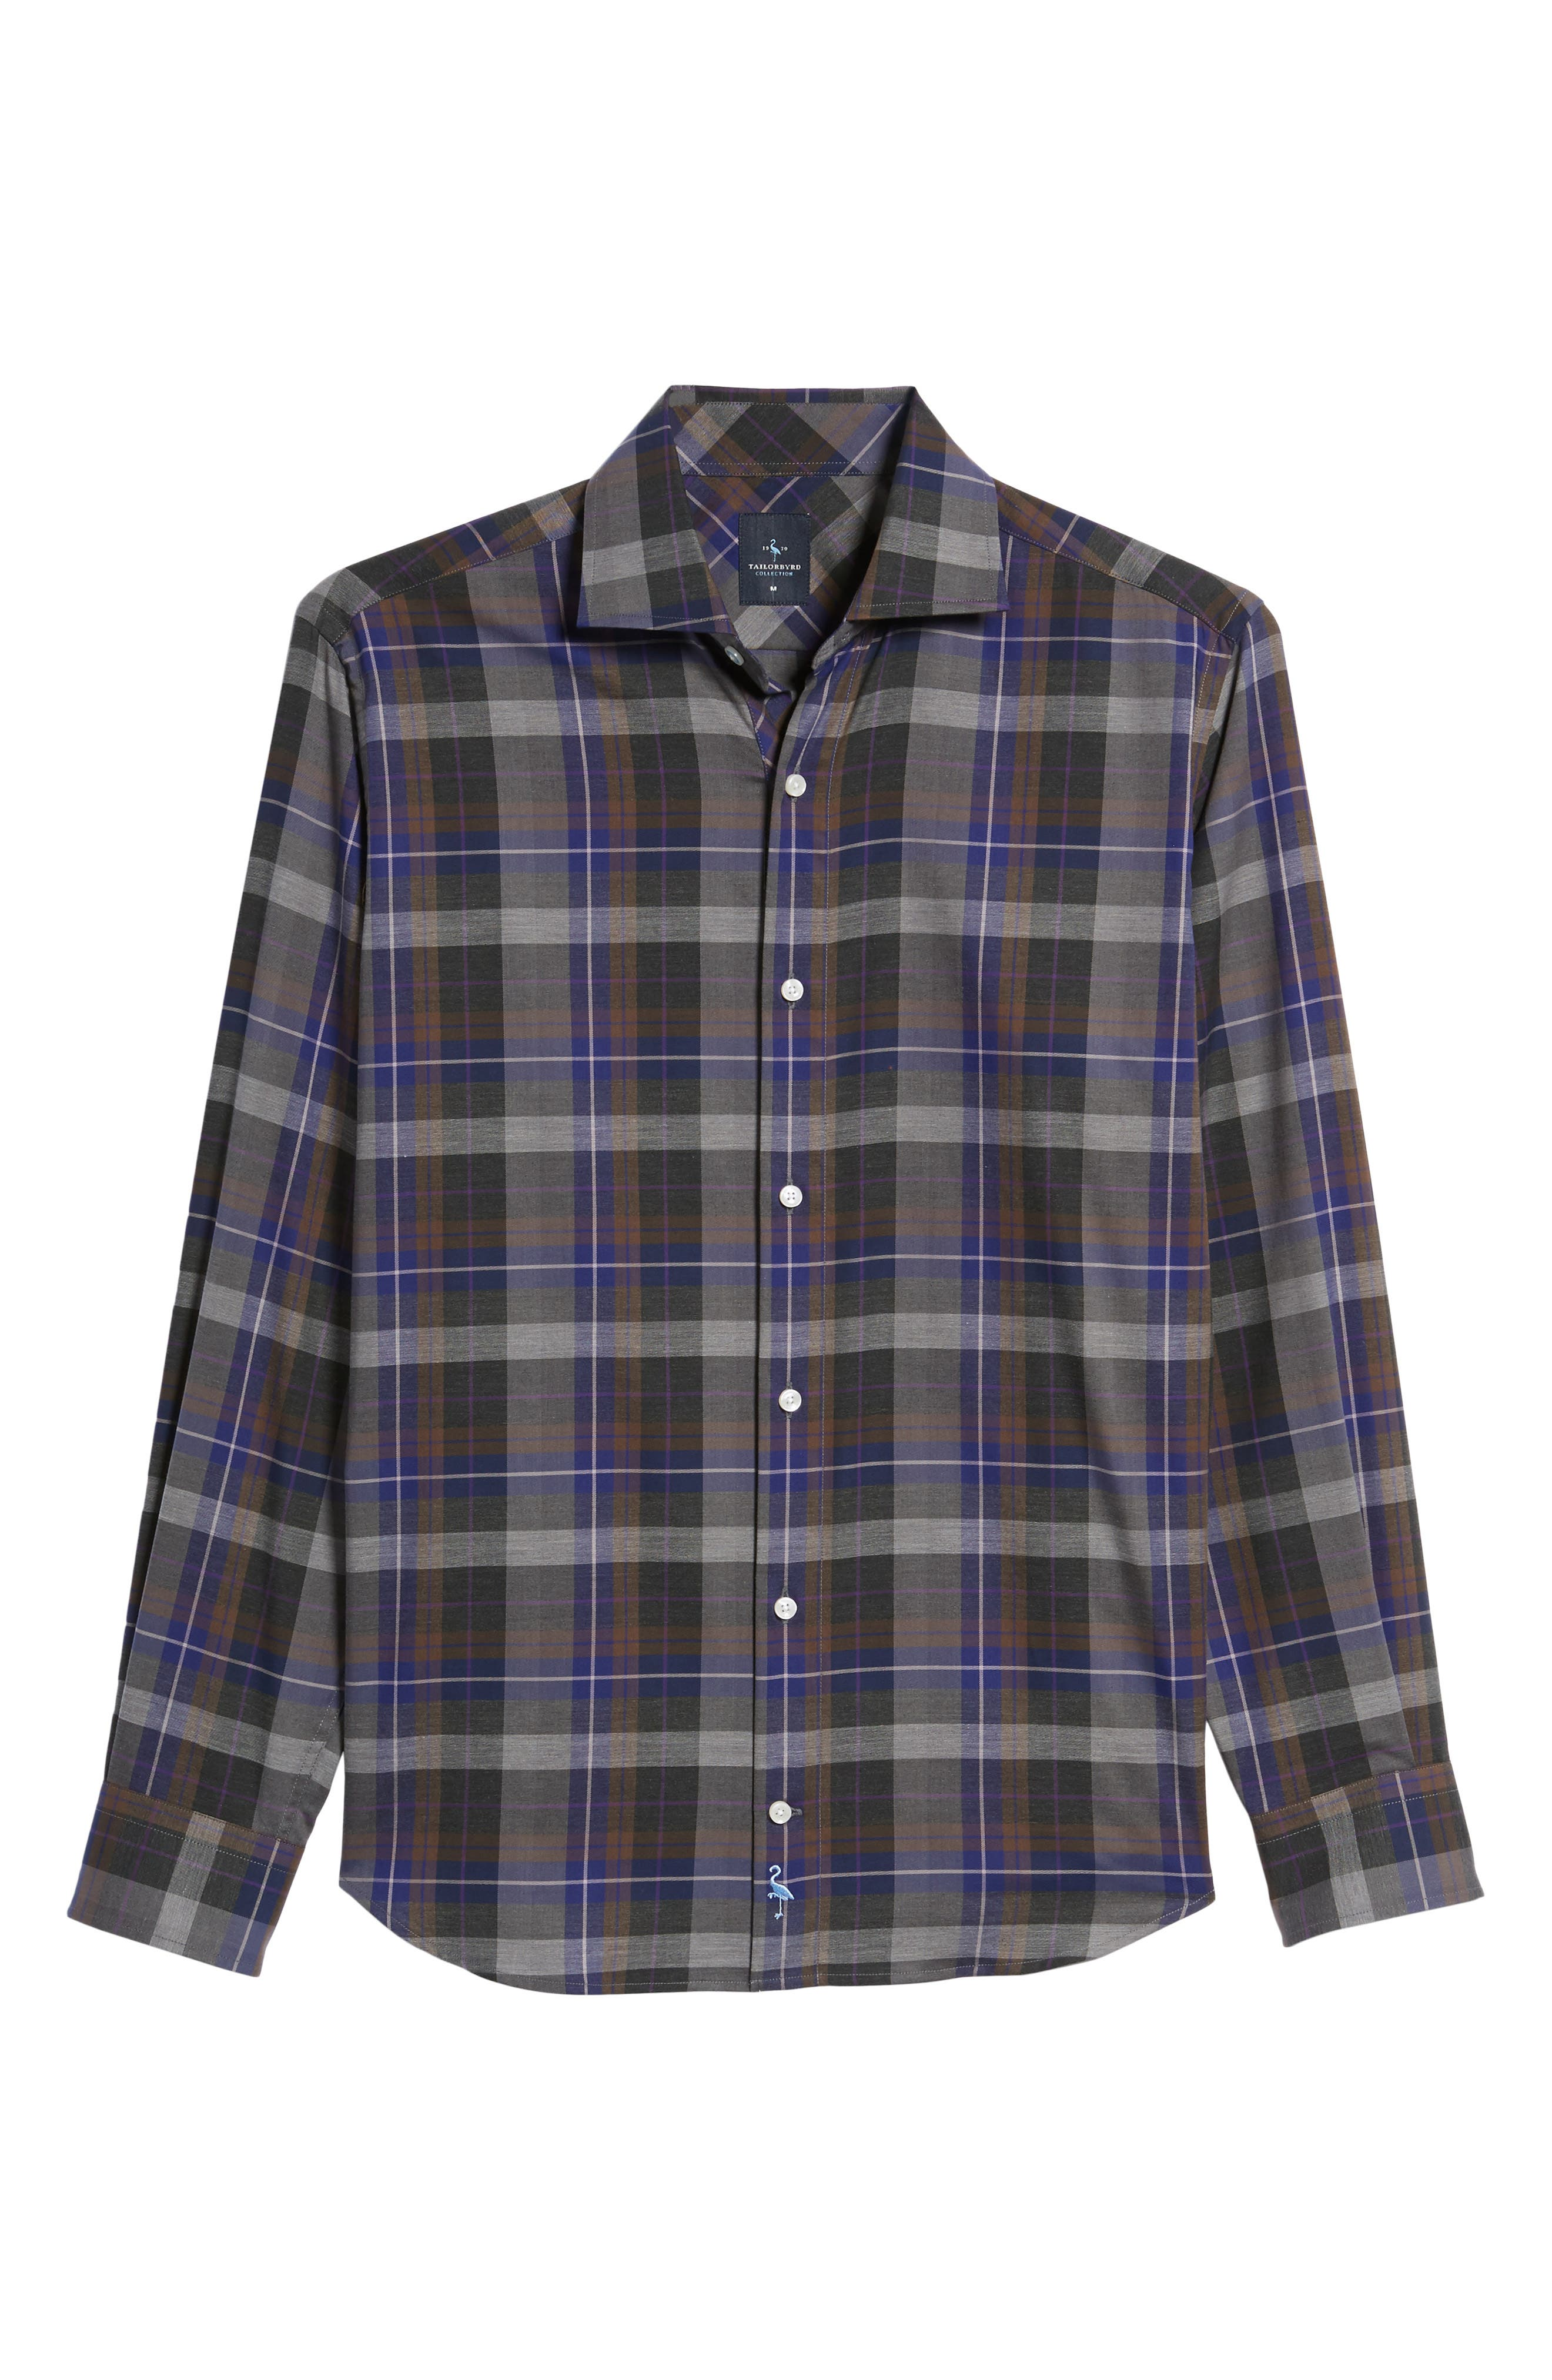 Cullen Plaid Twill Sport Shirt,                             Alternate thumbnail 6, color,                             Blue